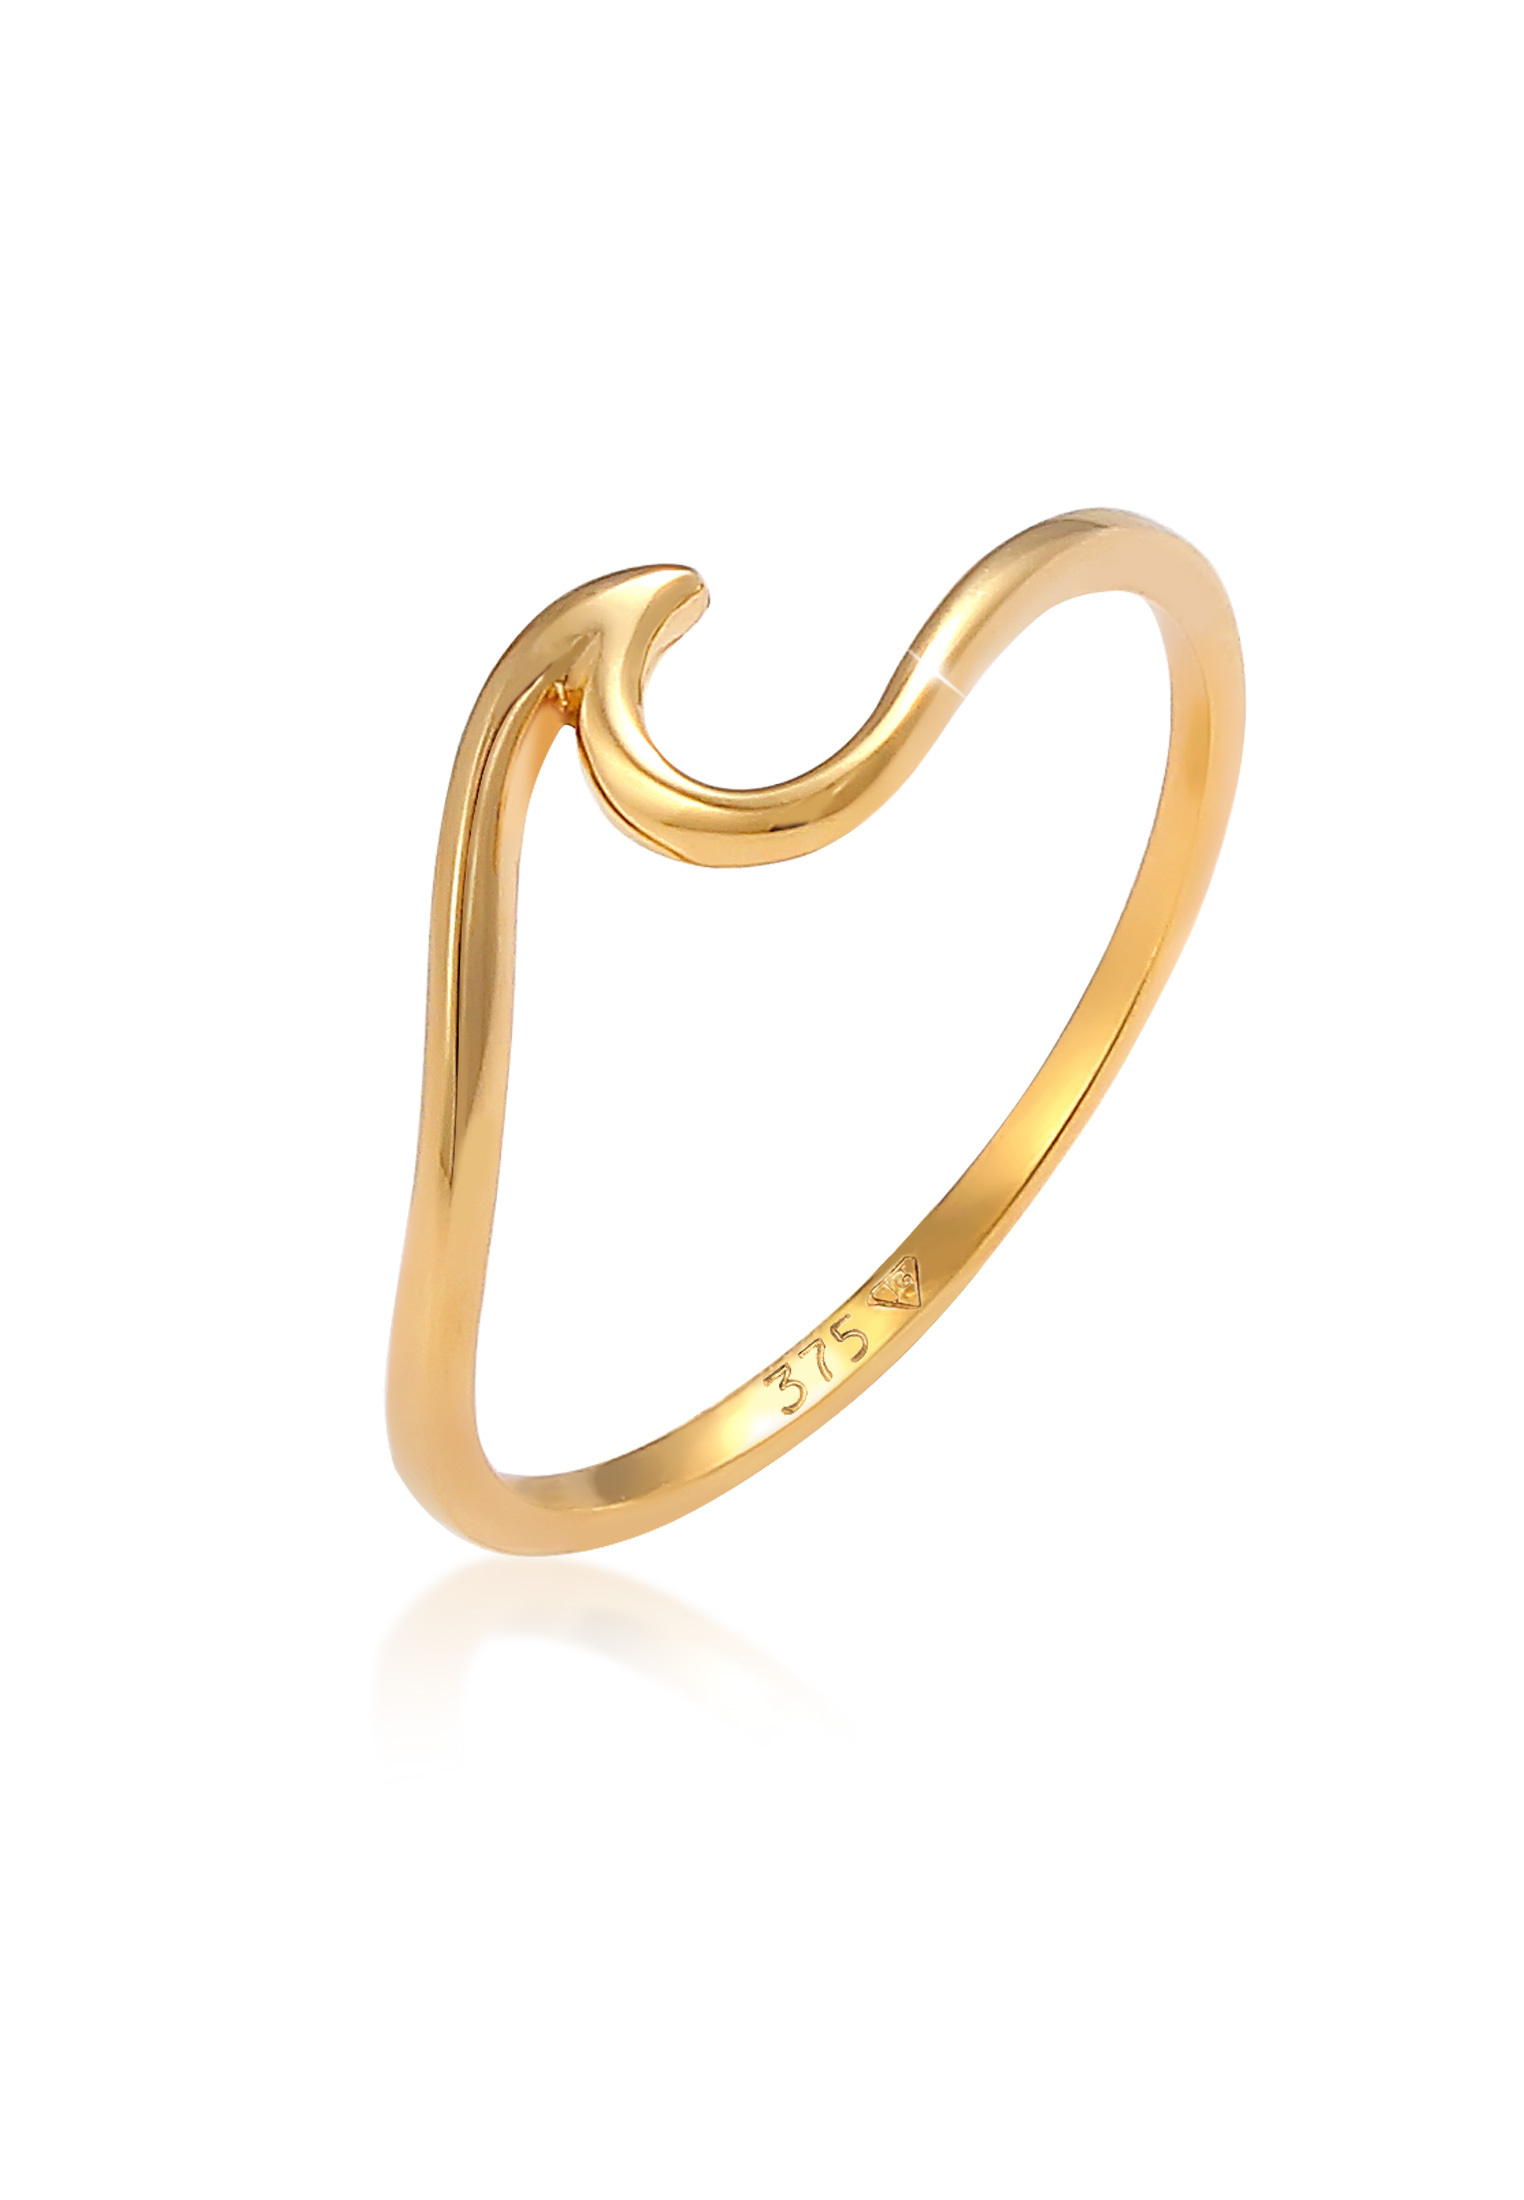 Ring Welle | 375 Gelbgold